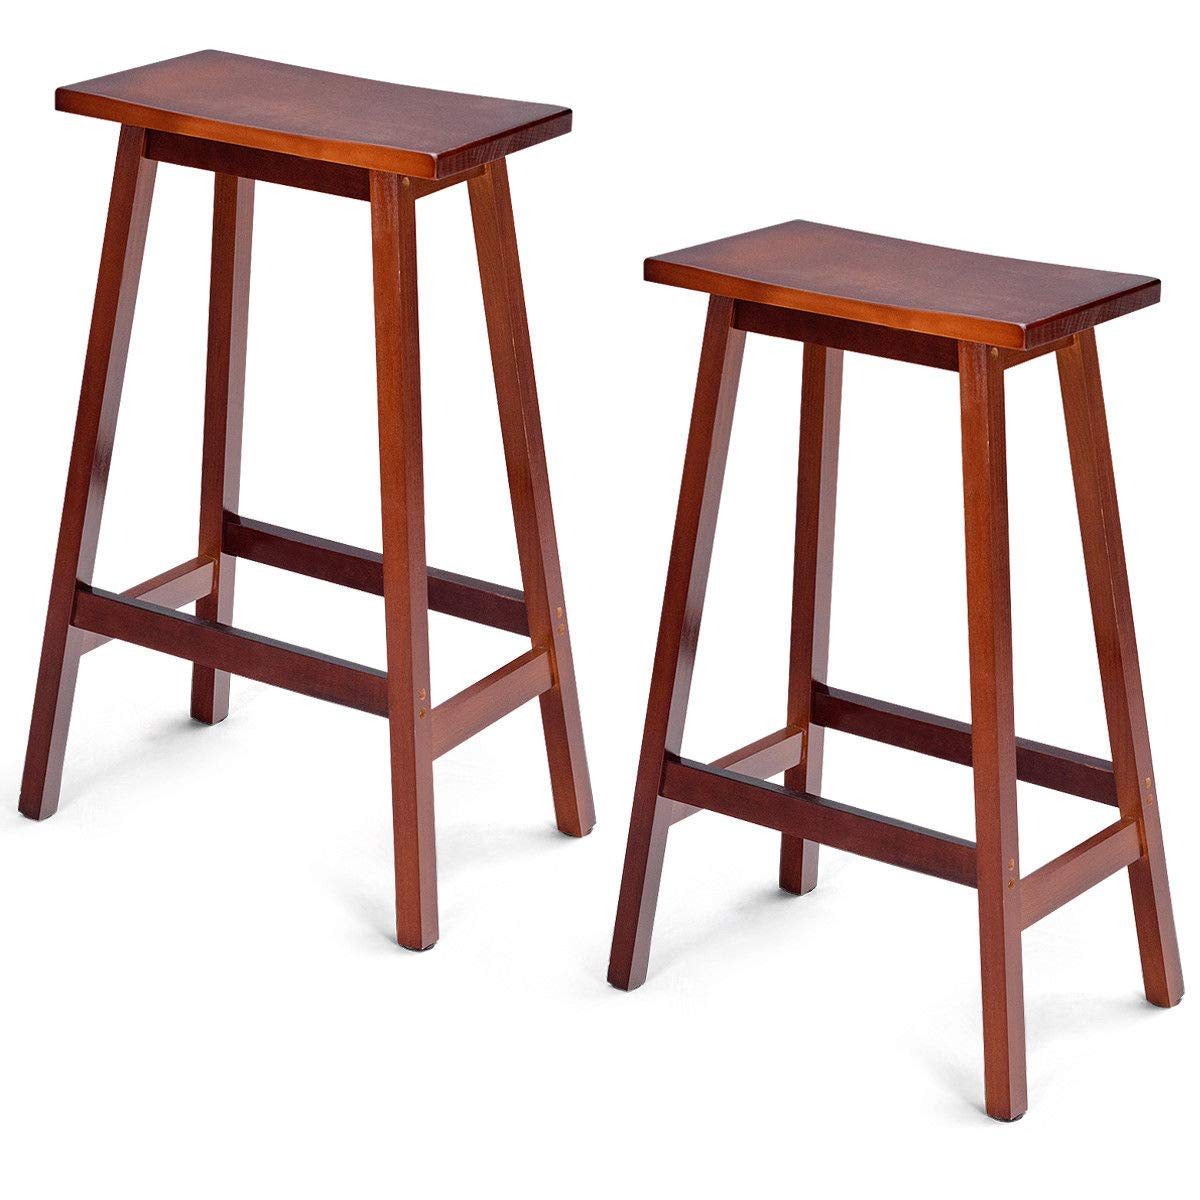 Picture of: Cheap Wood Backless Bar Stools Find Wood Backless Bar Stools Deals On Line At Alibaba Com